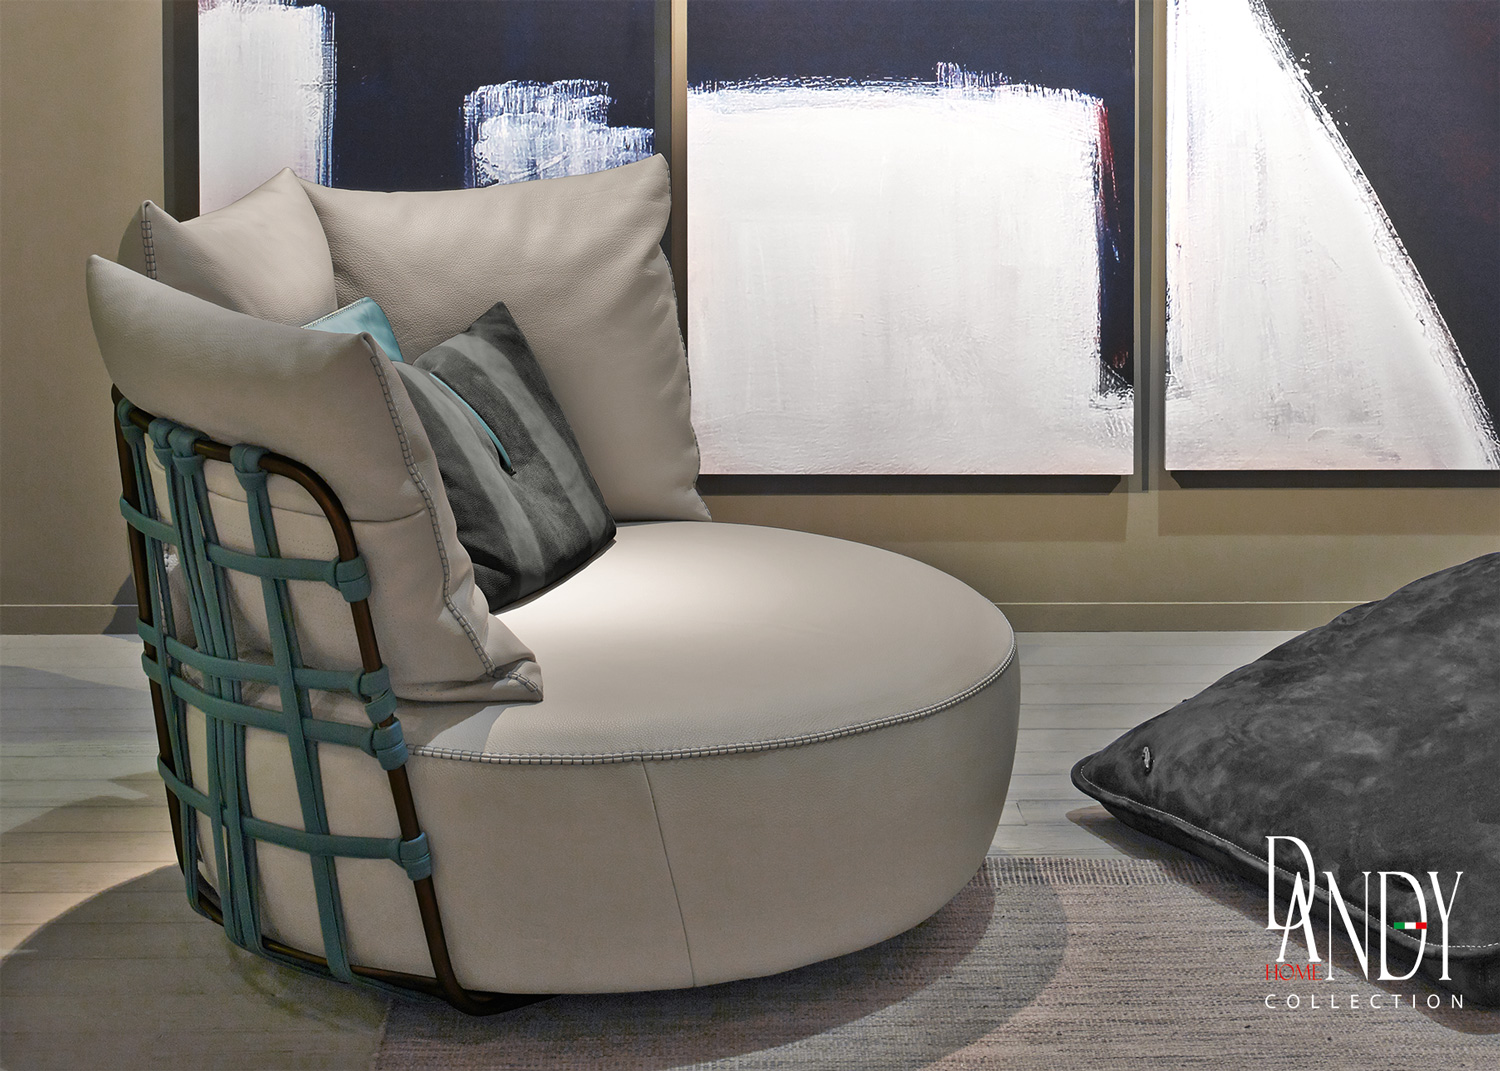 GAMMA-the-are-of-upholstery-display-10